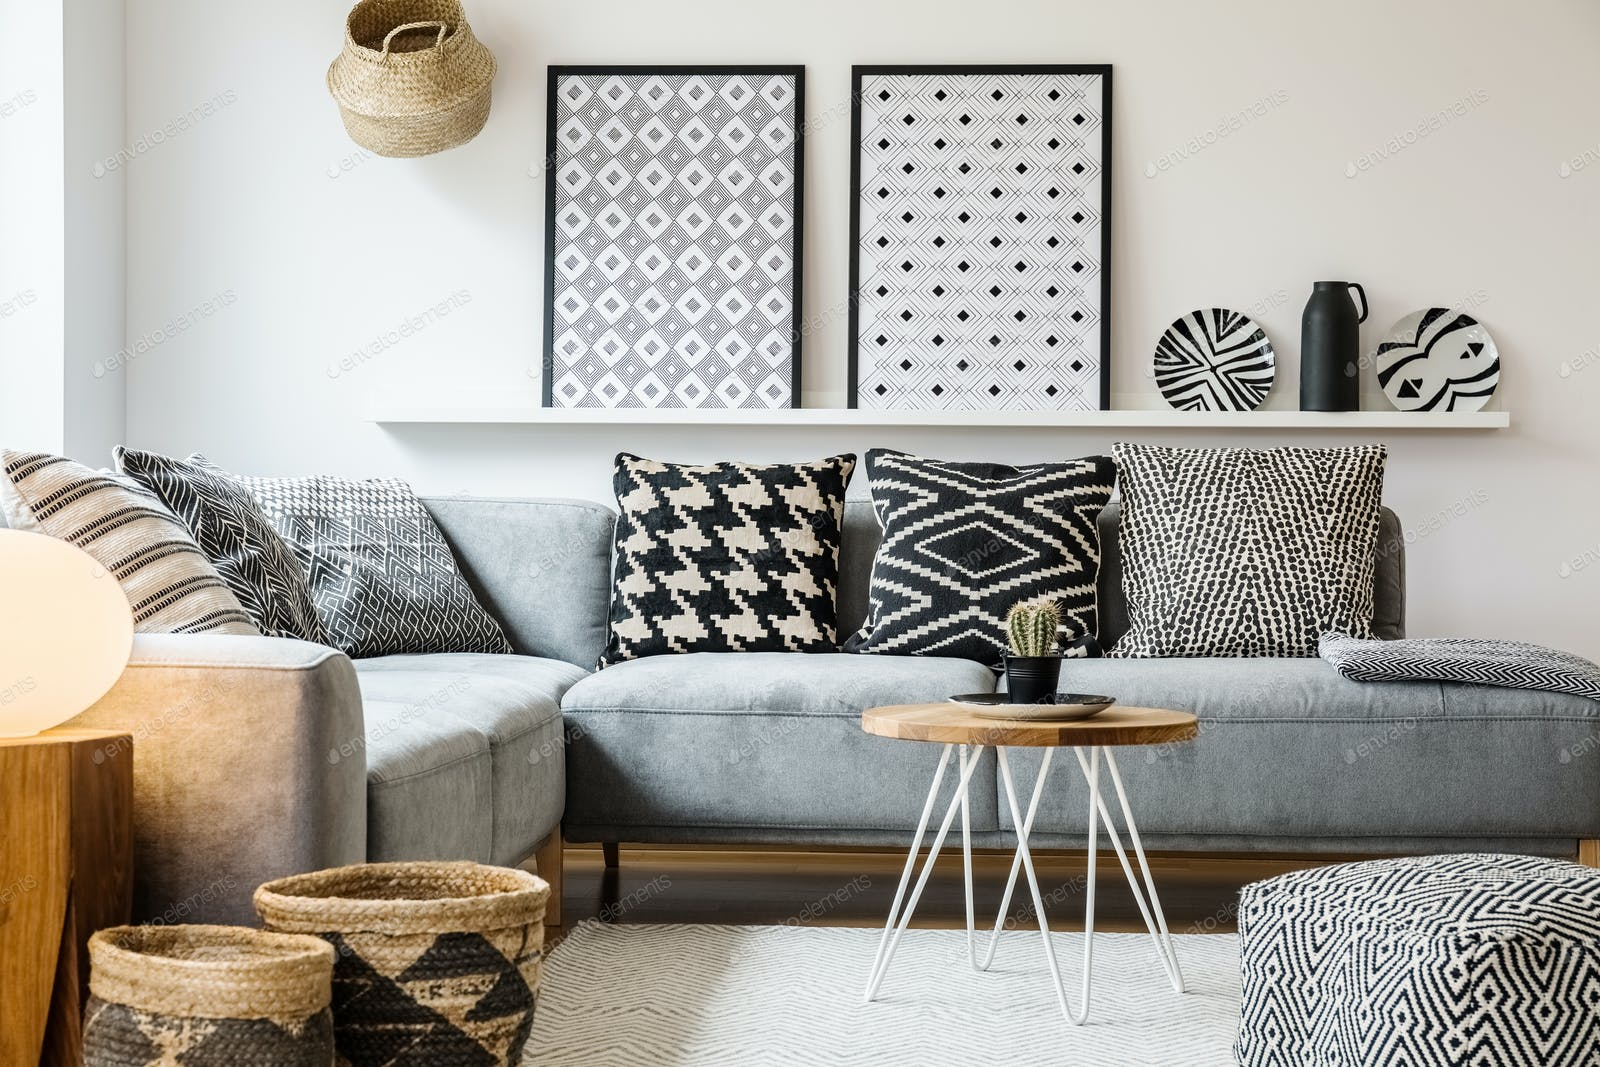 Patterned pillows on grey corner sofa in apartment interior with Foto von  bialasiewicz auf Envato Elements